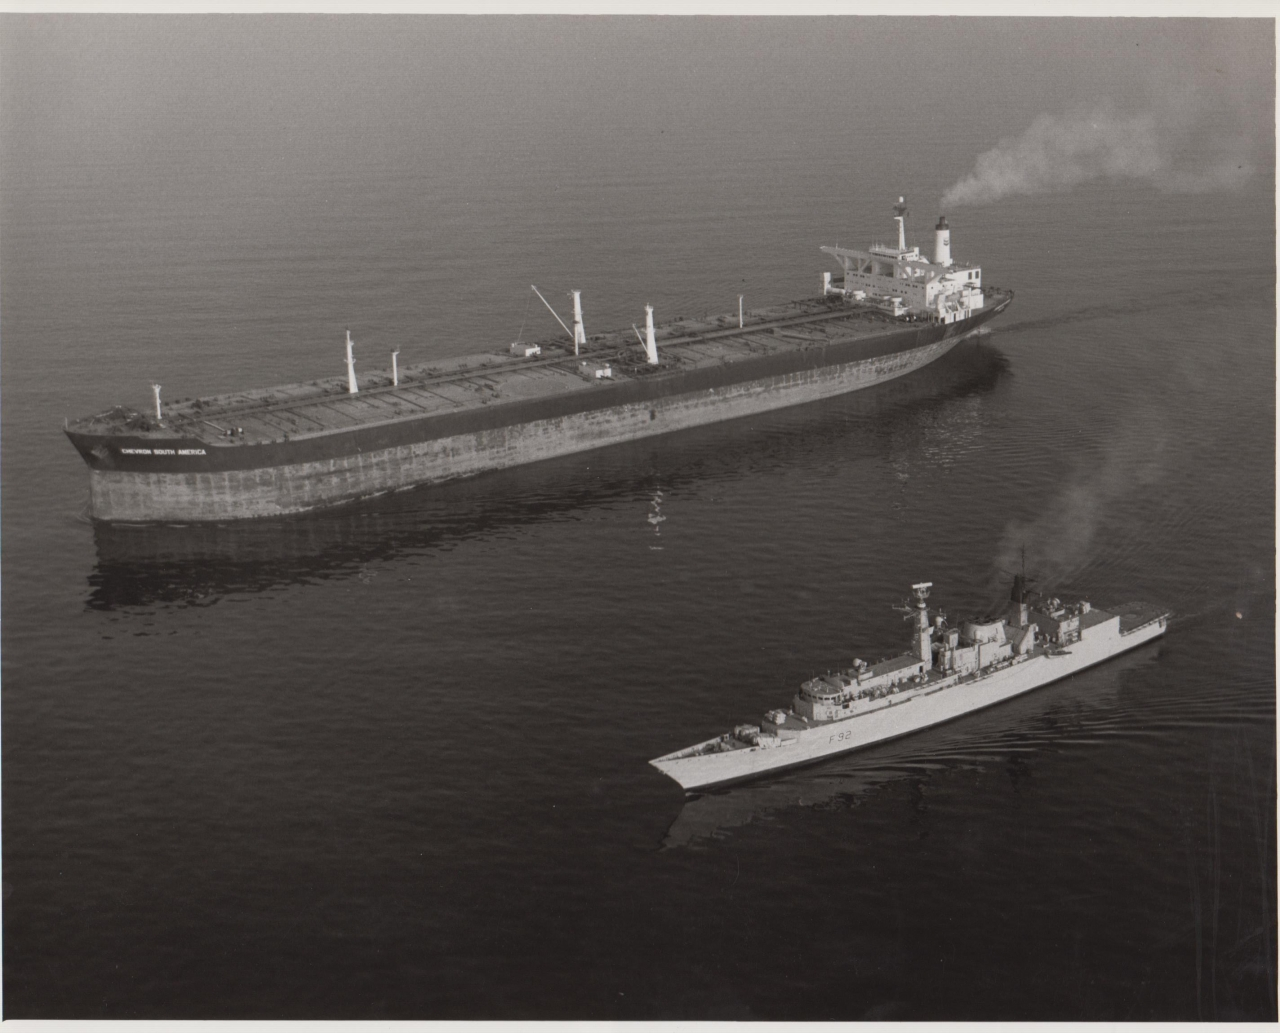 HMS Boxer - Iran/Iraq War